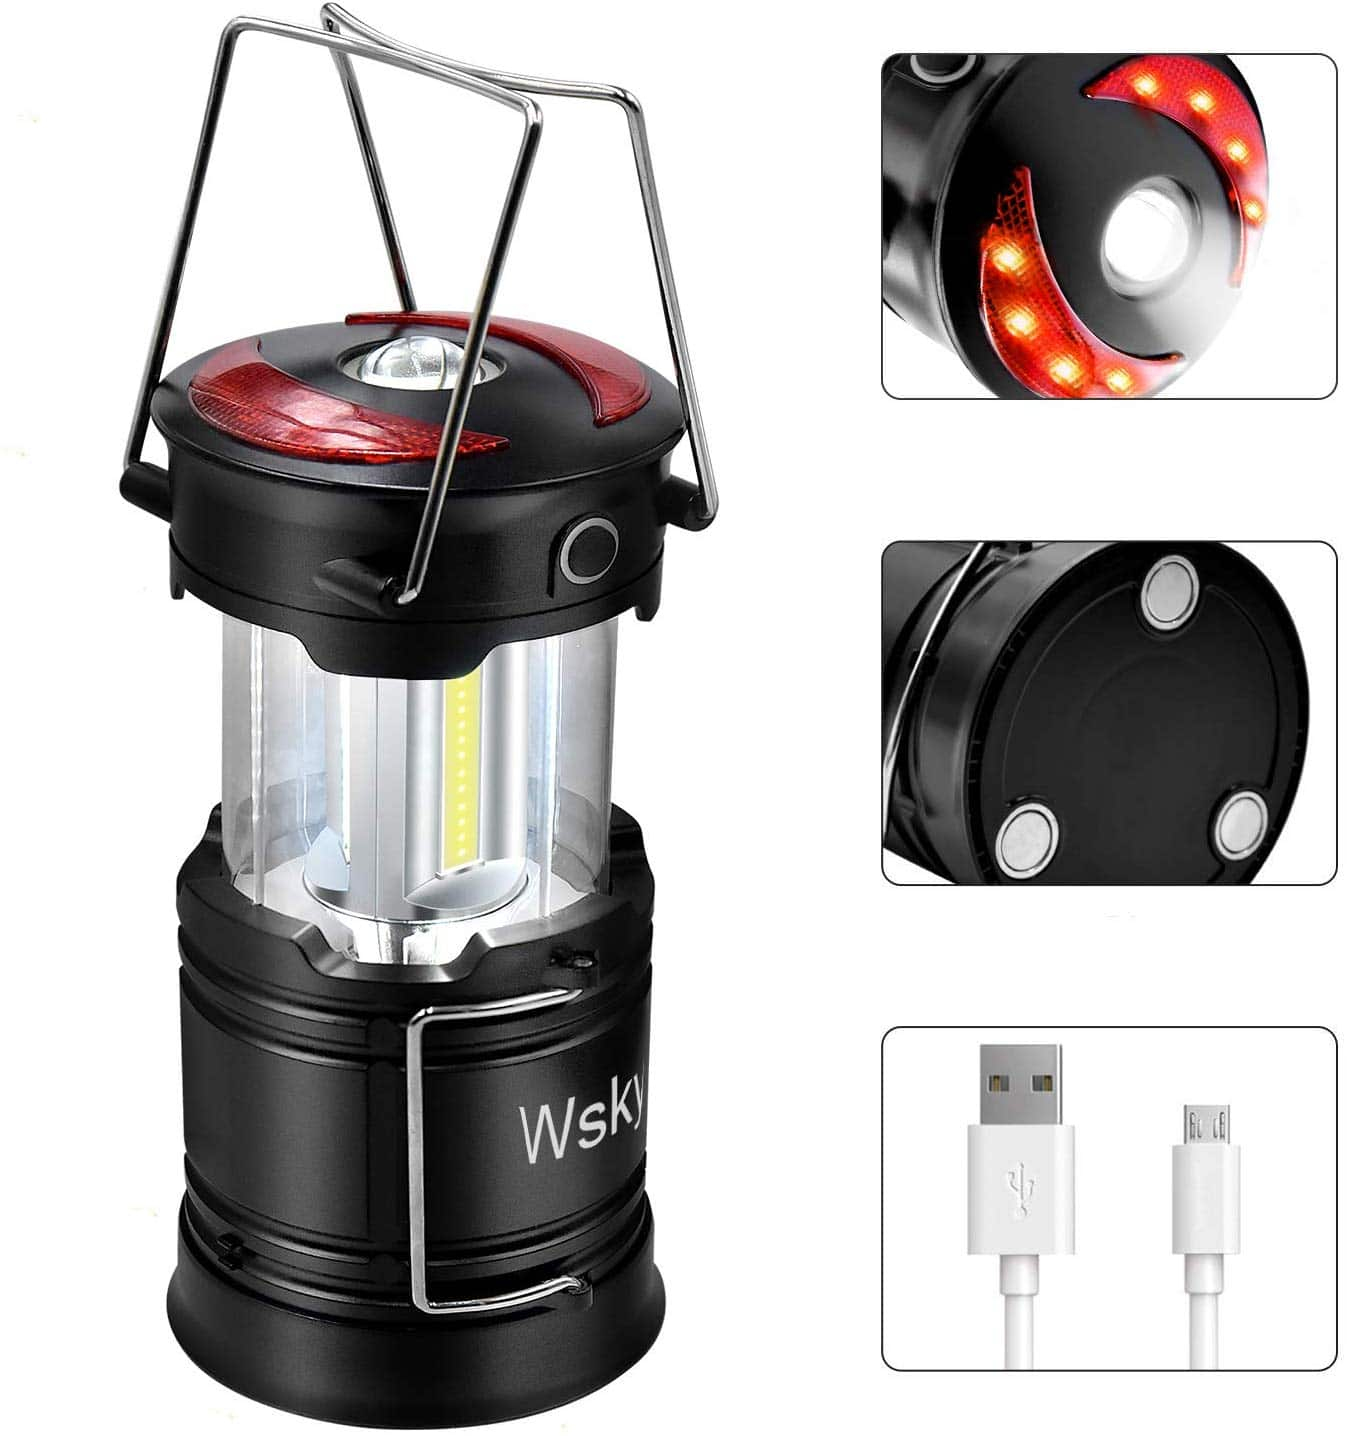 Led Camping Lantern - Best Rechargeable LED Flashlight Lantern for $11.19+FS